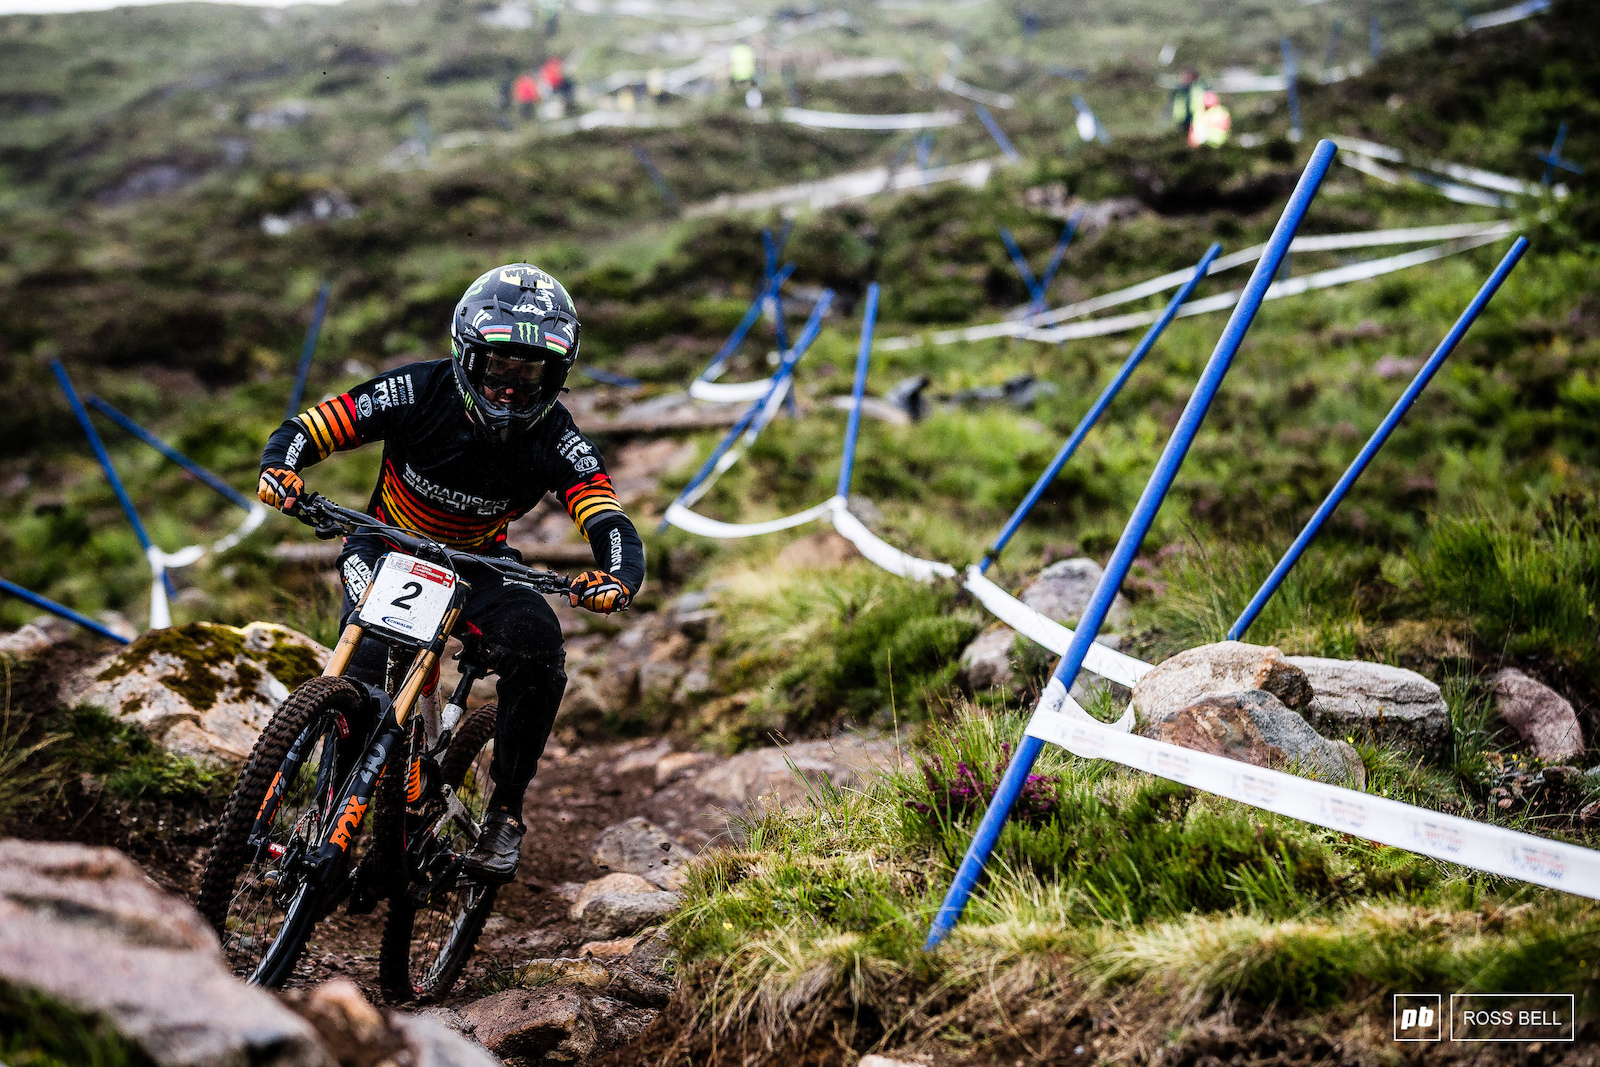 After taking a big crash in his seeding run Danny Hart dropped in first on race runs. He sat in the hot seat until the final rider down Matt Walker took a pretty commanding win.